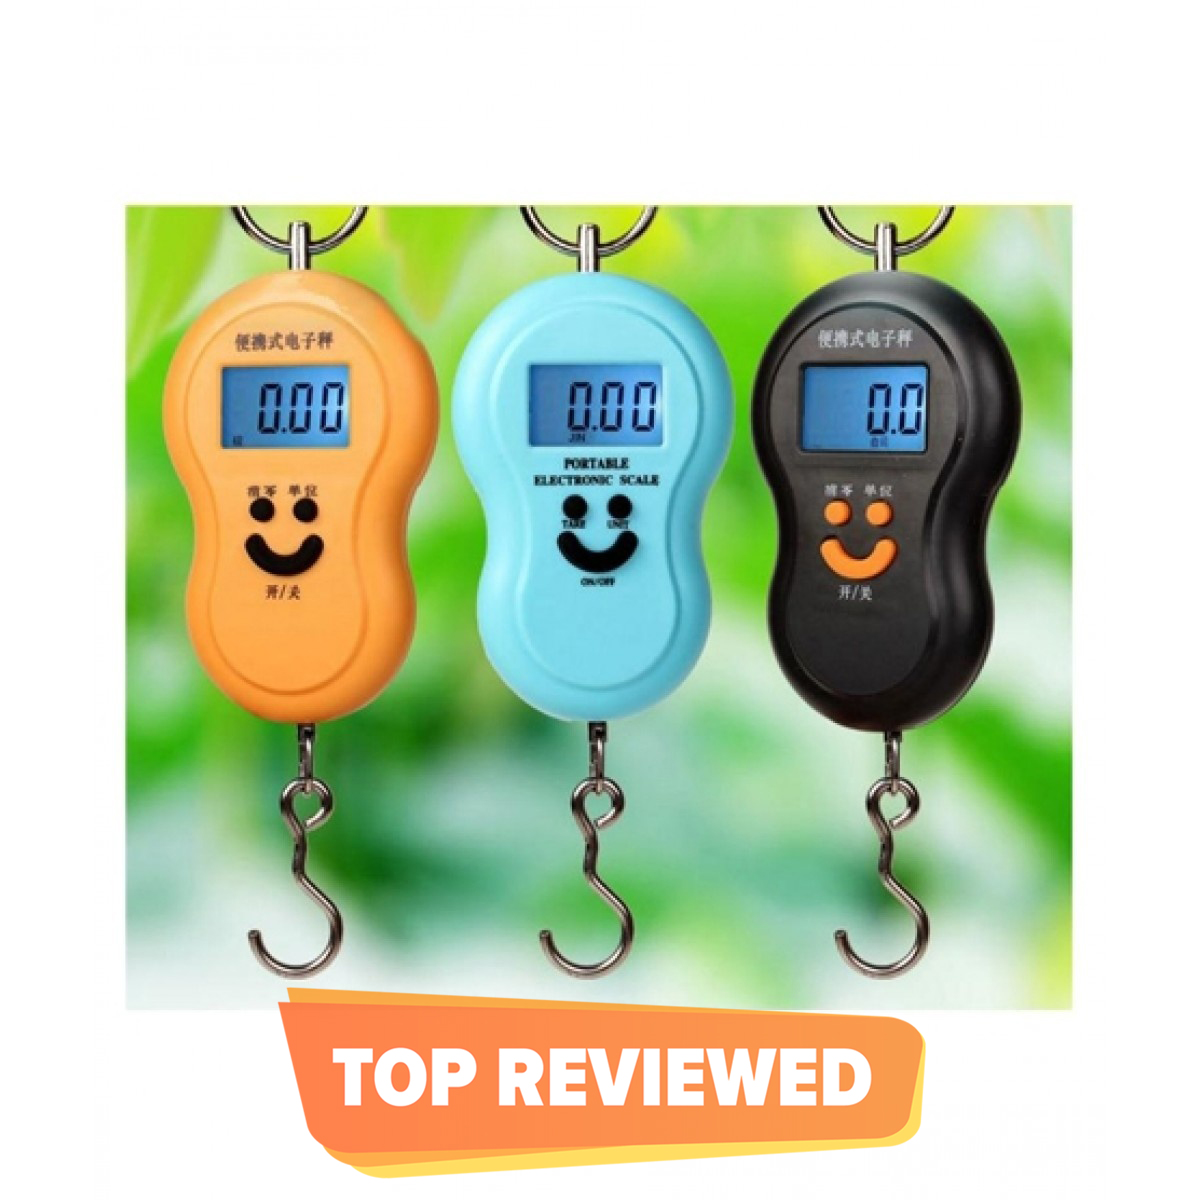 Imported Portable Electronic Digital Hook Scale Hanging Scale Fishing Scale Luggage Bag Scale Digital Pocket Scale Digital Kitchen Scale Digital Weight Machine Weight Scale Digital Weighing Scale Weighing Machine Digital Mini Small Scale Weight Machine